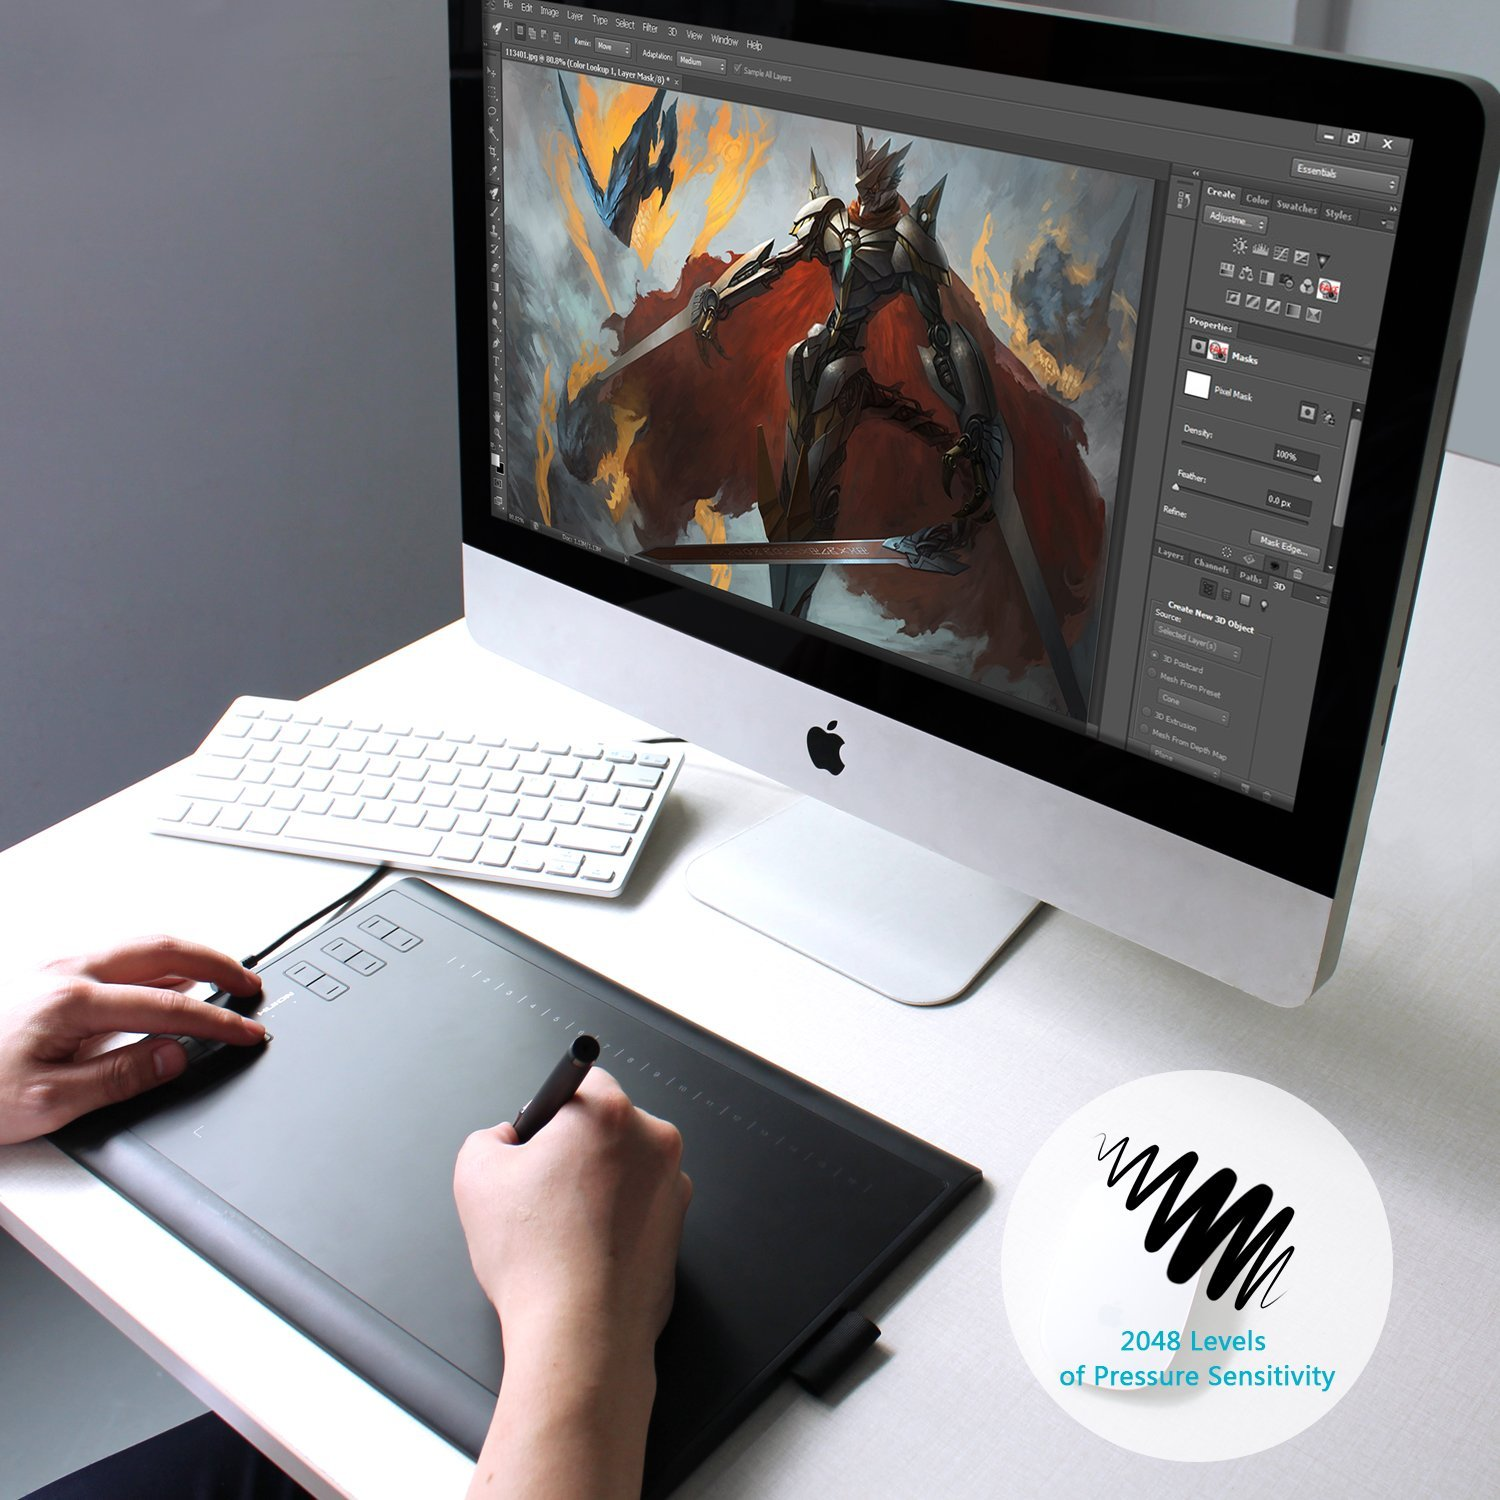 Huion New 1060 Plus Graphic Drawing Tablet with Built-in 8GB MicroSD Card and 12 Express Keys